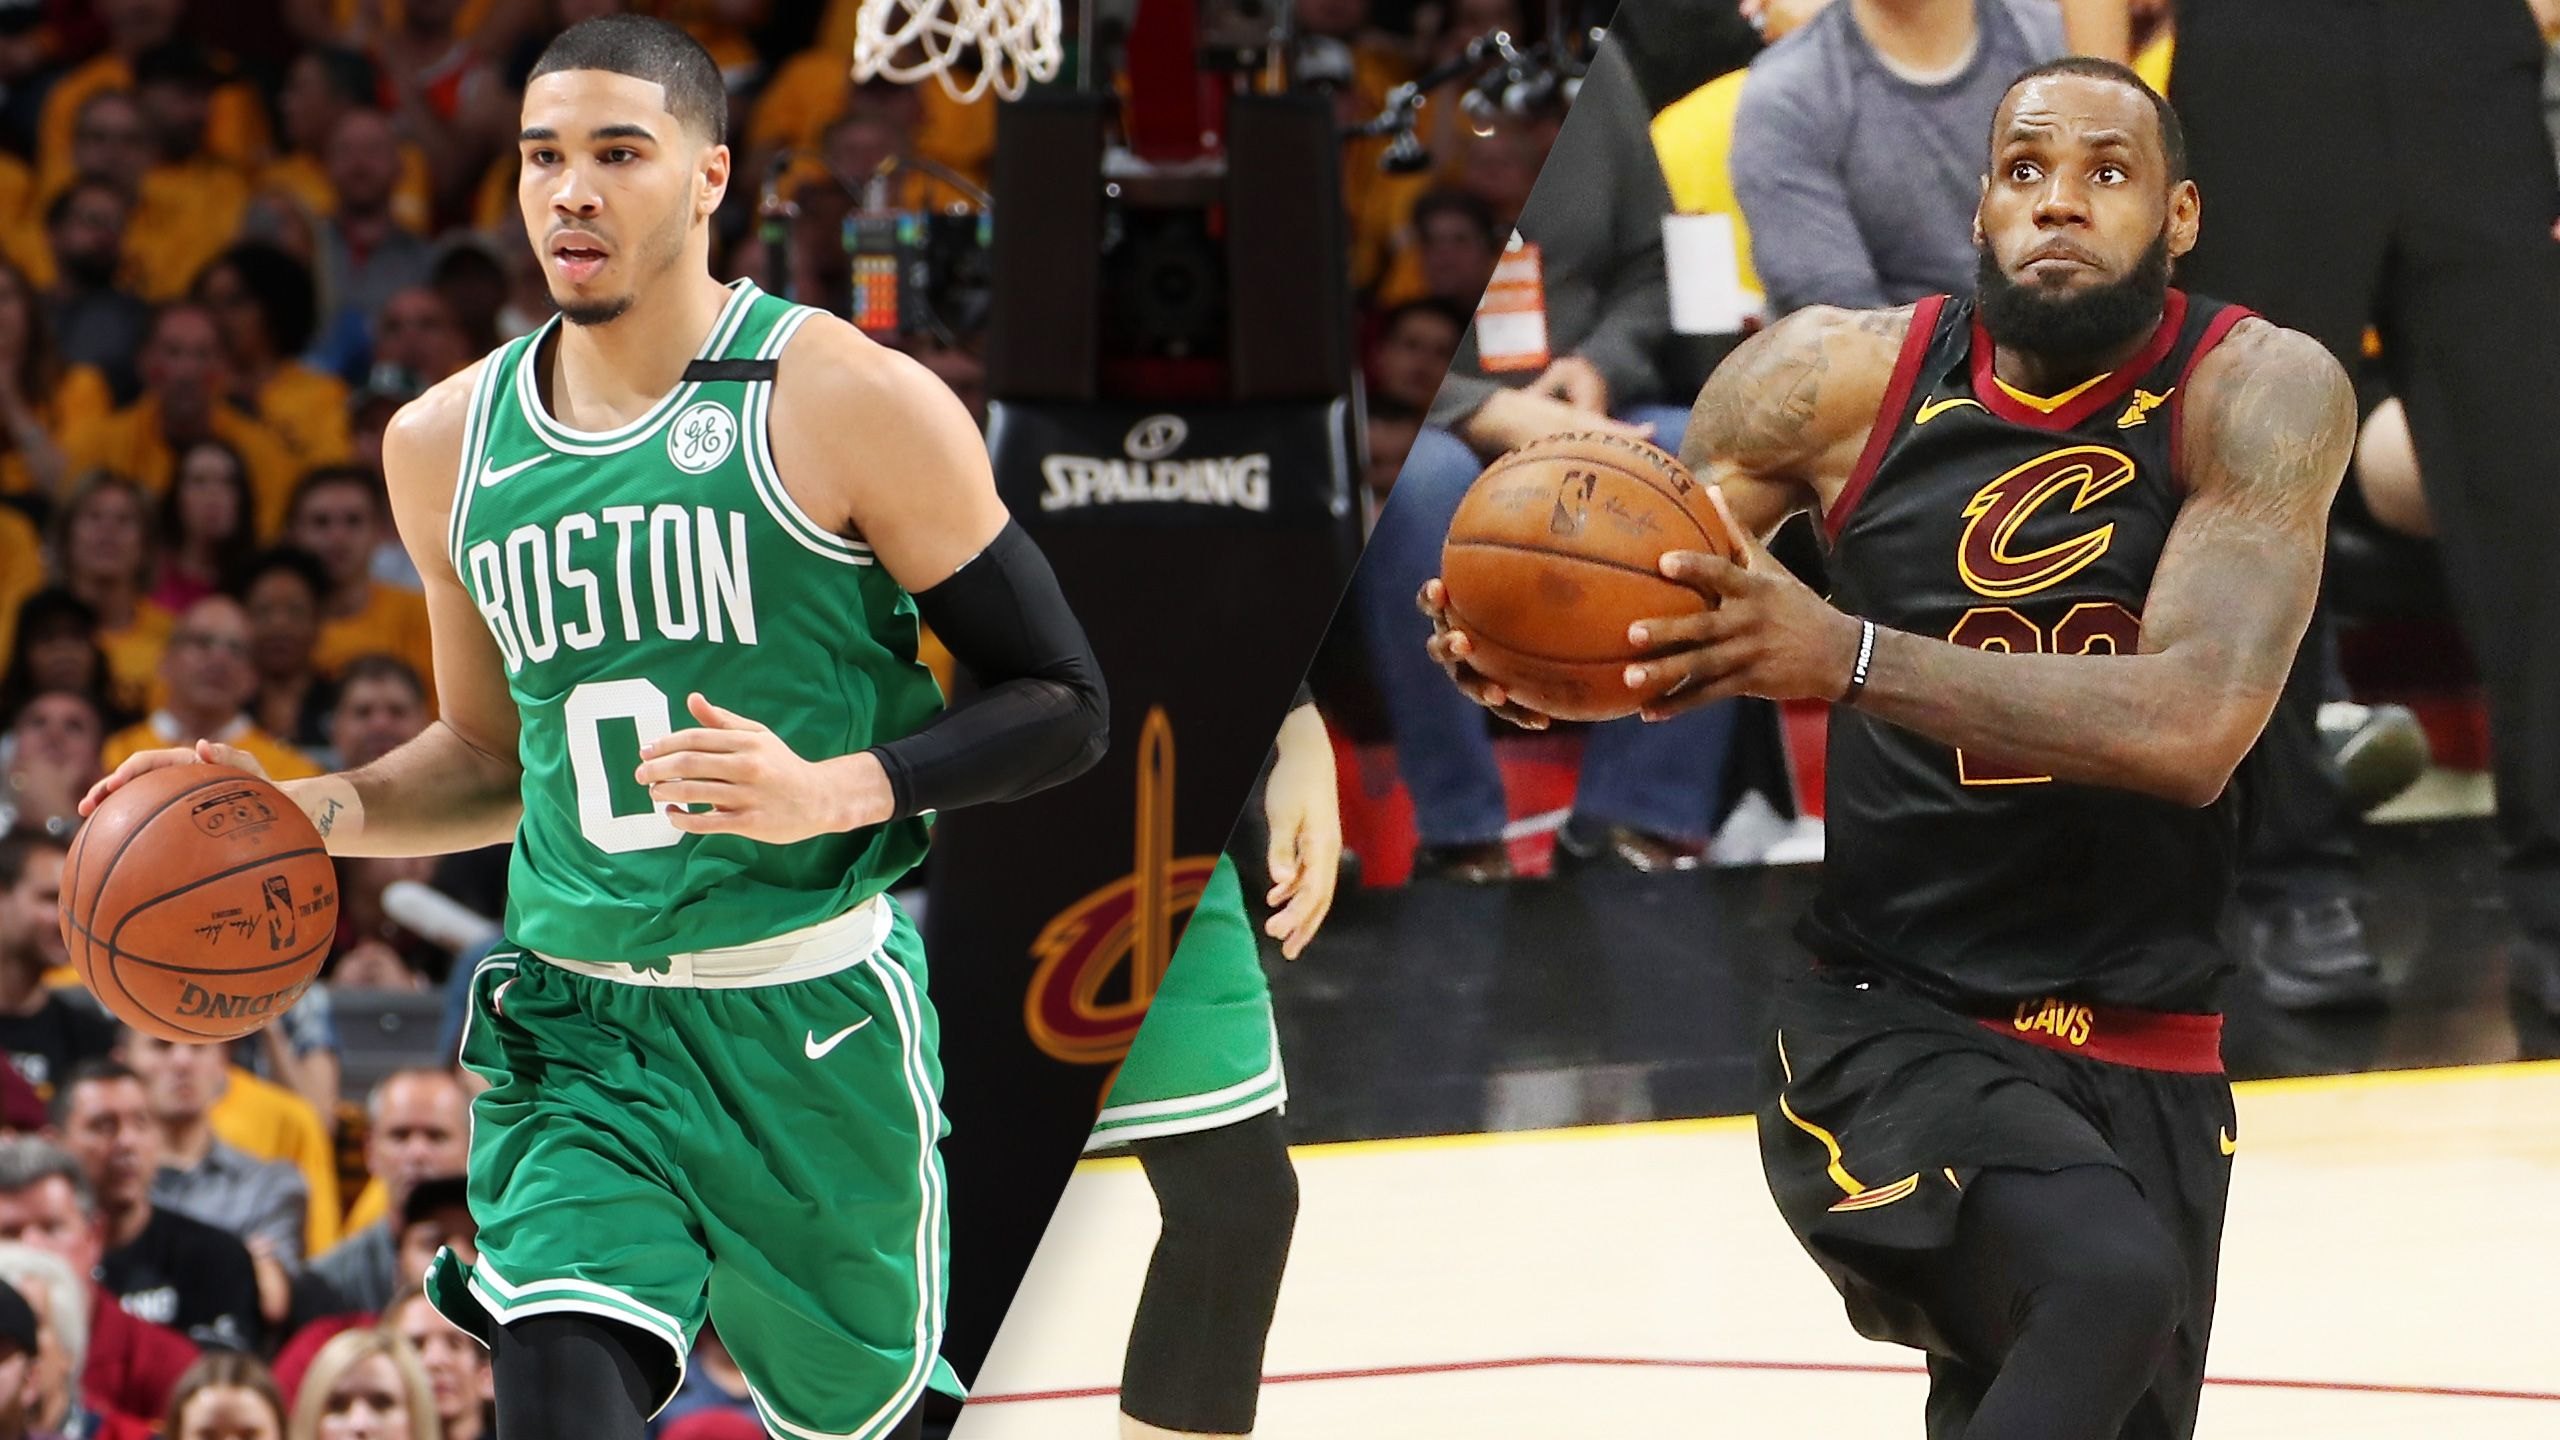 Boston Celtics vs. Cleveland Cavaliers (Conference Finals Game 4)